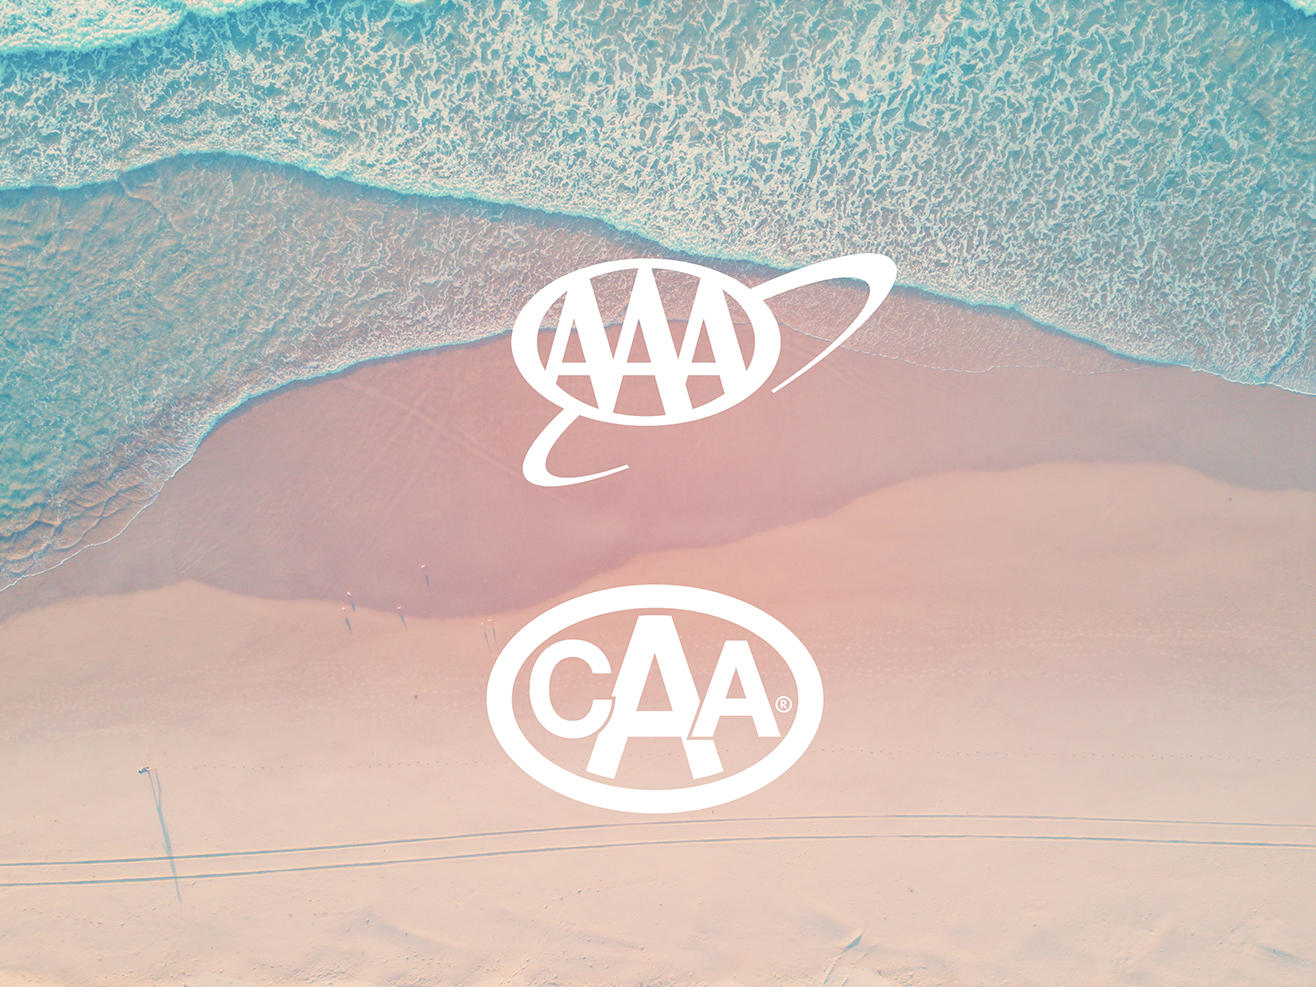 aarp logo and caa logo overlayed on beach background image